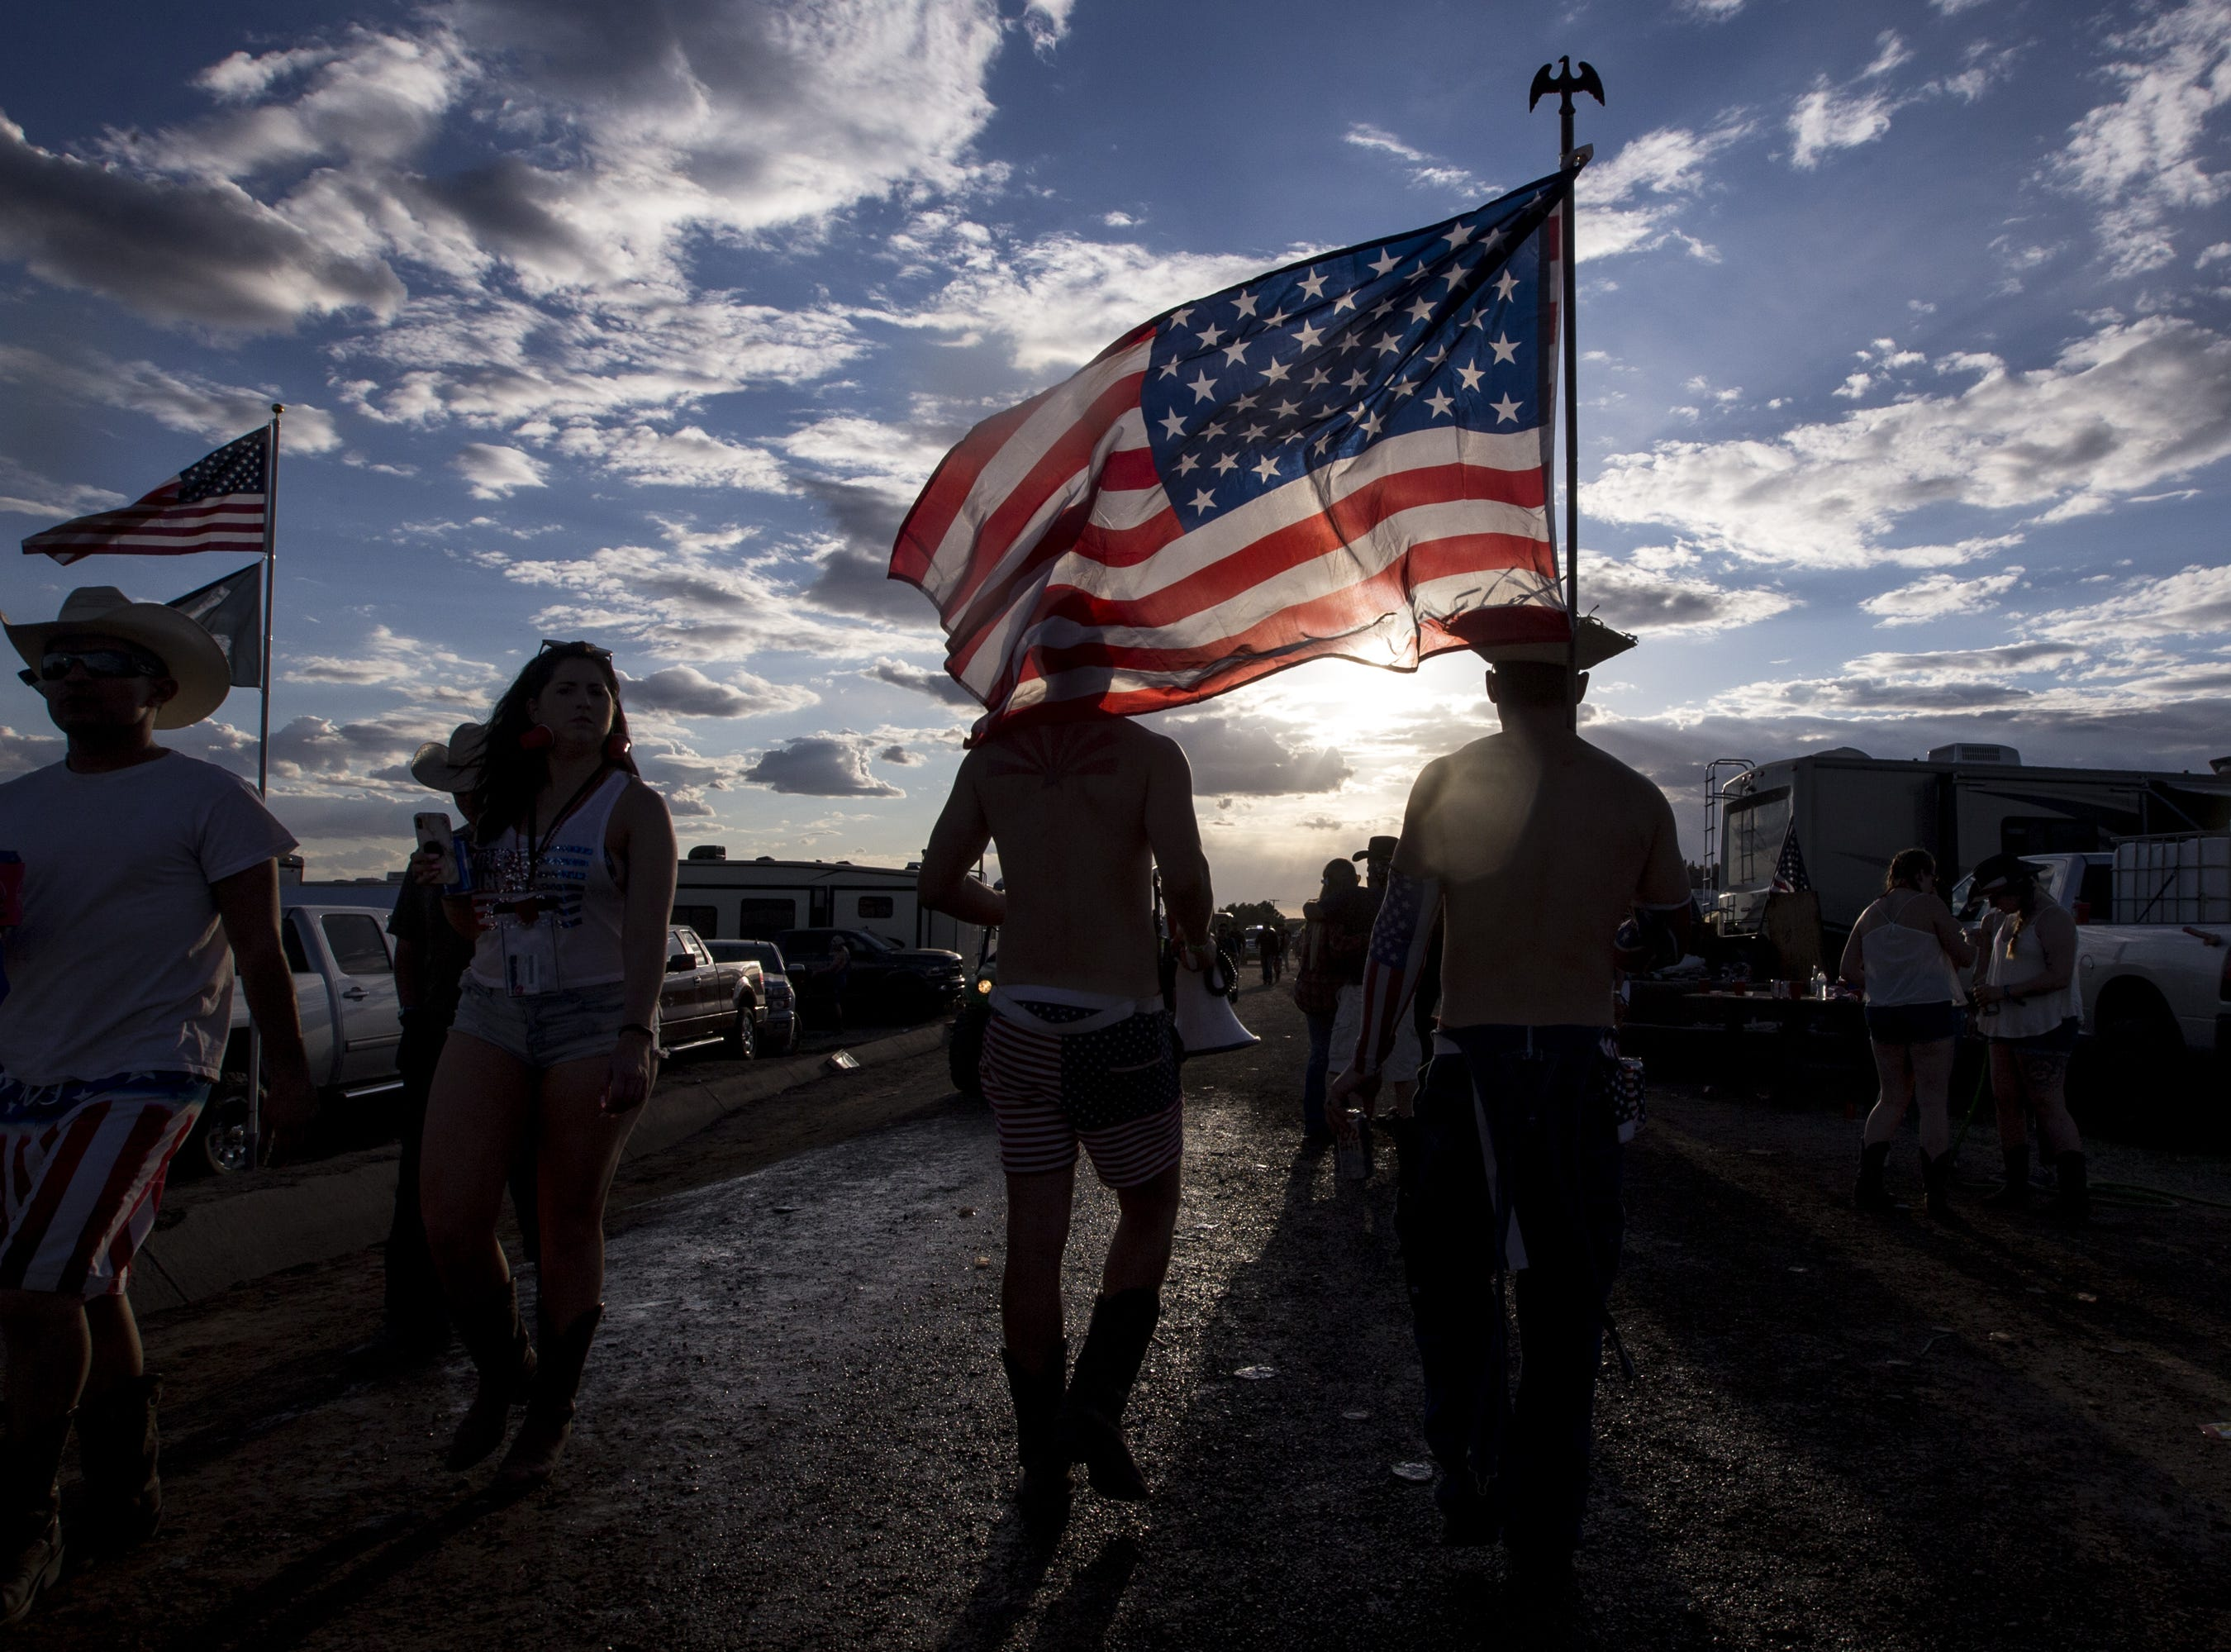 Josh Fowler carries an American flag at the Crazy Coyote campground on Friday, April 12, 2019, during Day 2 of Country Thunder Arizona in Florence, Ariz.